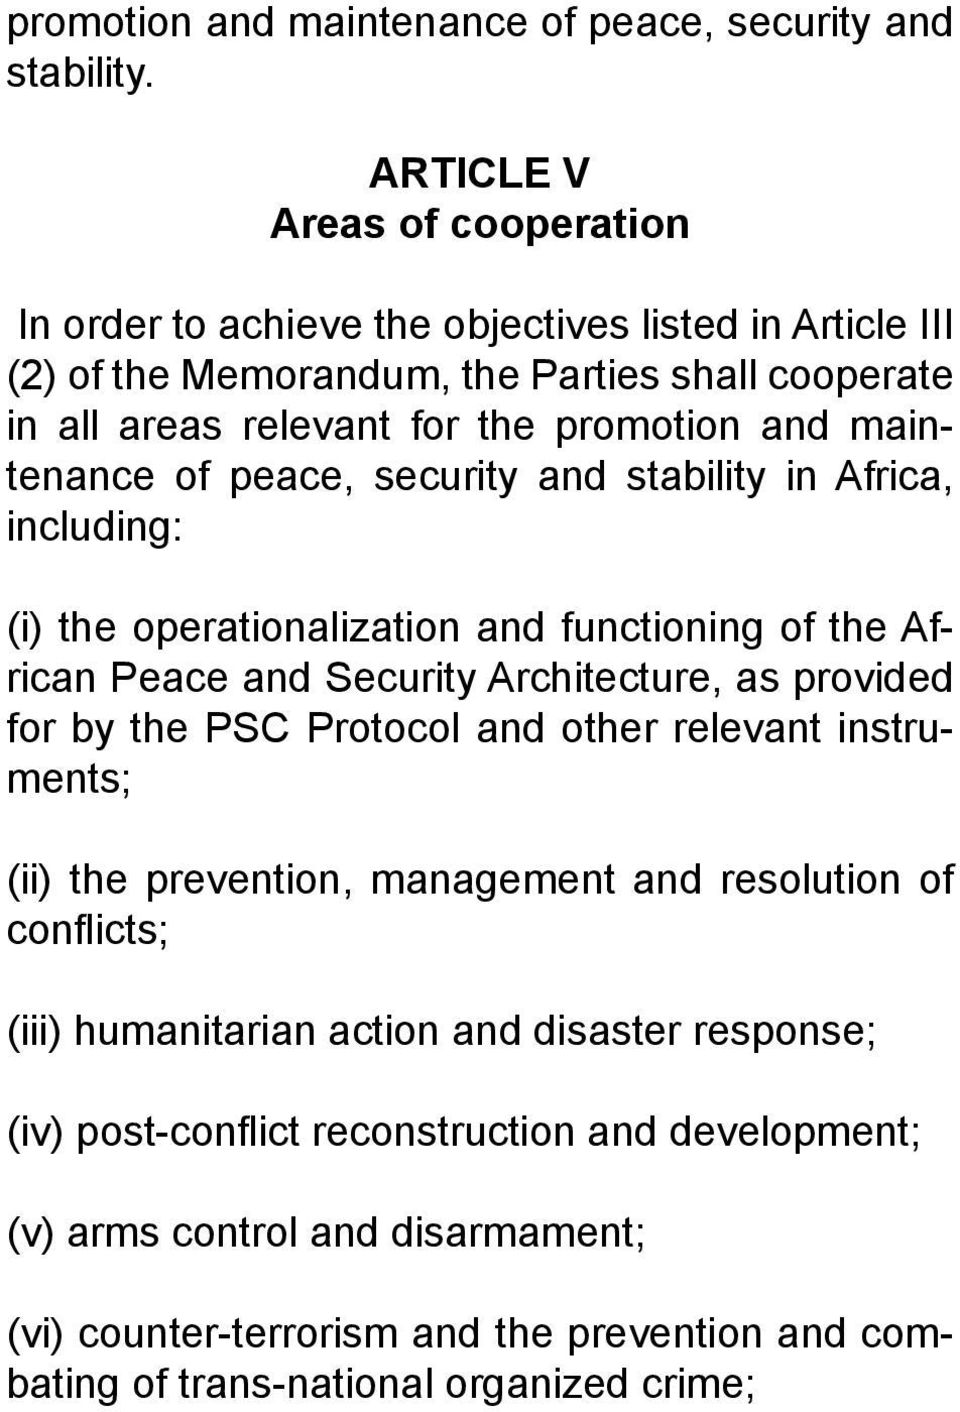 maintenance of peace, security and stability in Africa, including: (i) the operationalization and functioning of the African Peace and Security Architecture, as provided for by the PSC